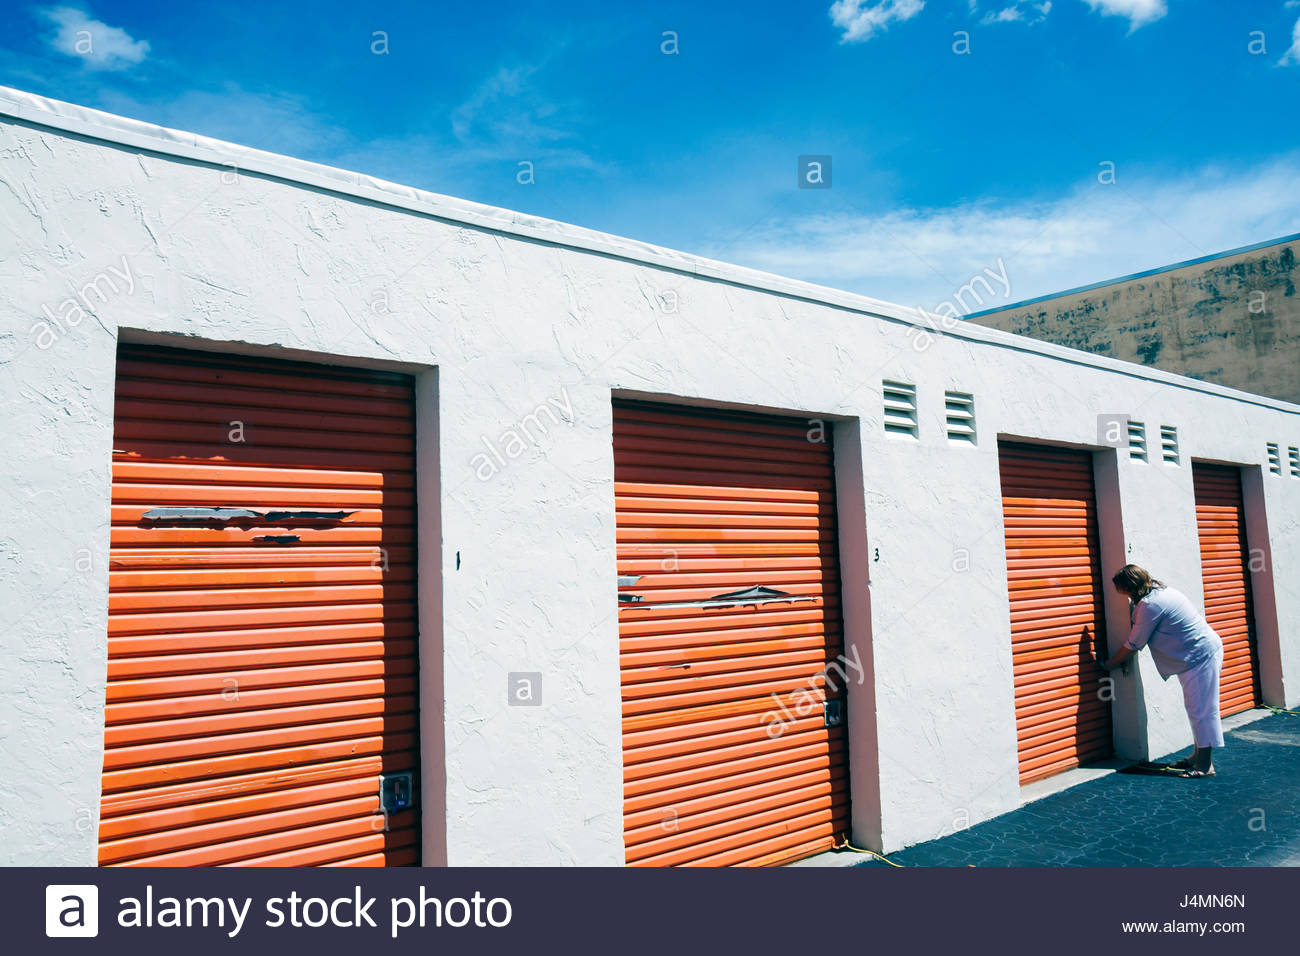 Miami Hialeah Florida Public Storage Business Self Storage Unit Locker  Rental Mini Warehouse Woman Unlocking Orange Door